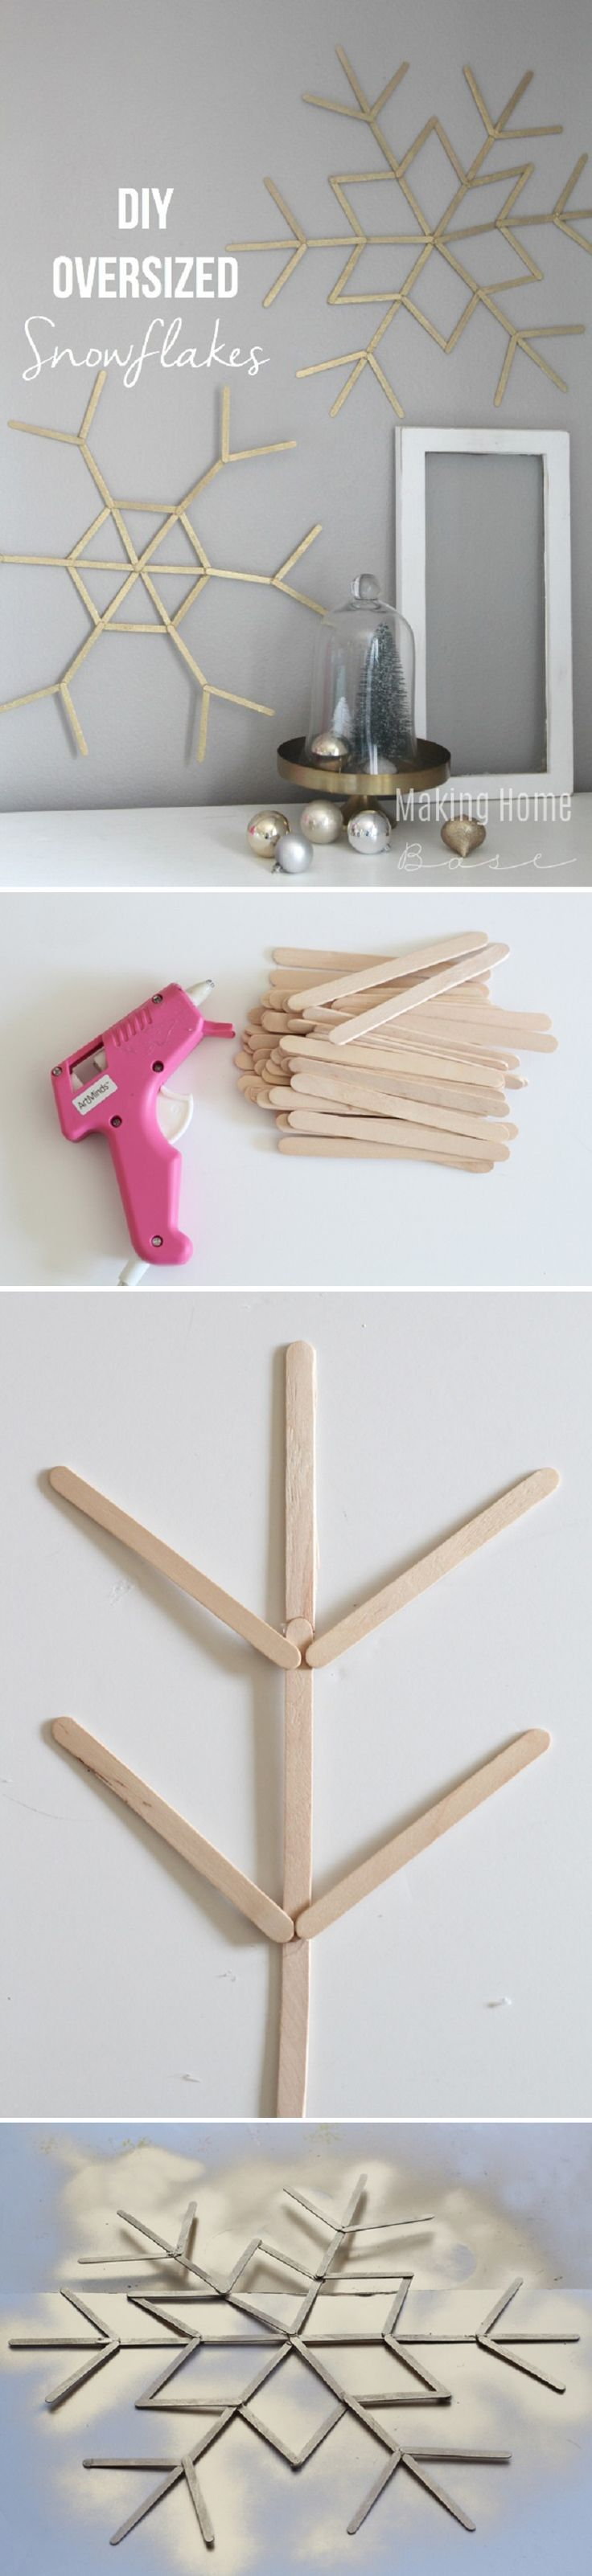 OK, this is cute.... DIY Oversized Snowflakes from popsicle sticks